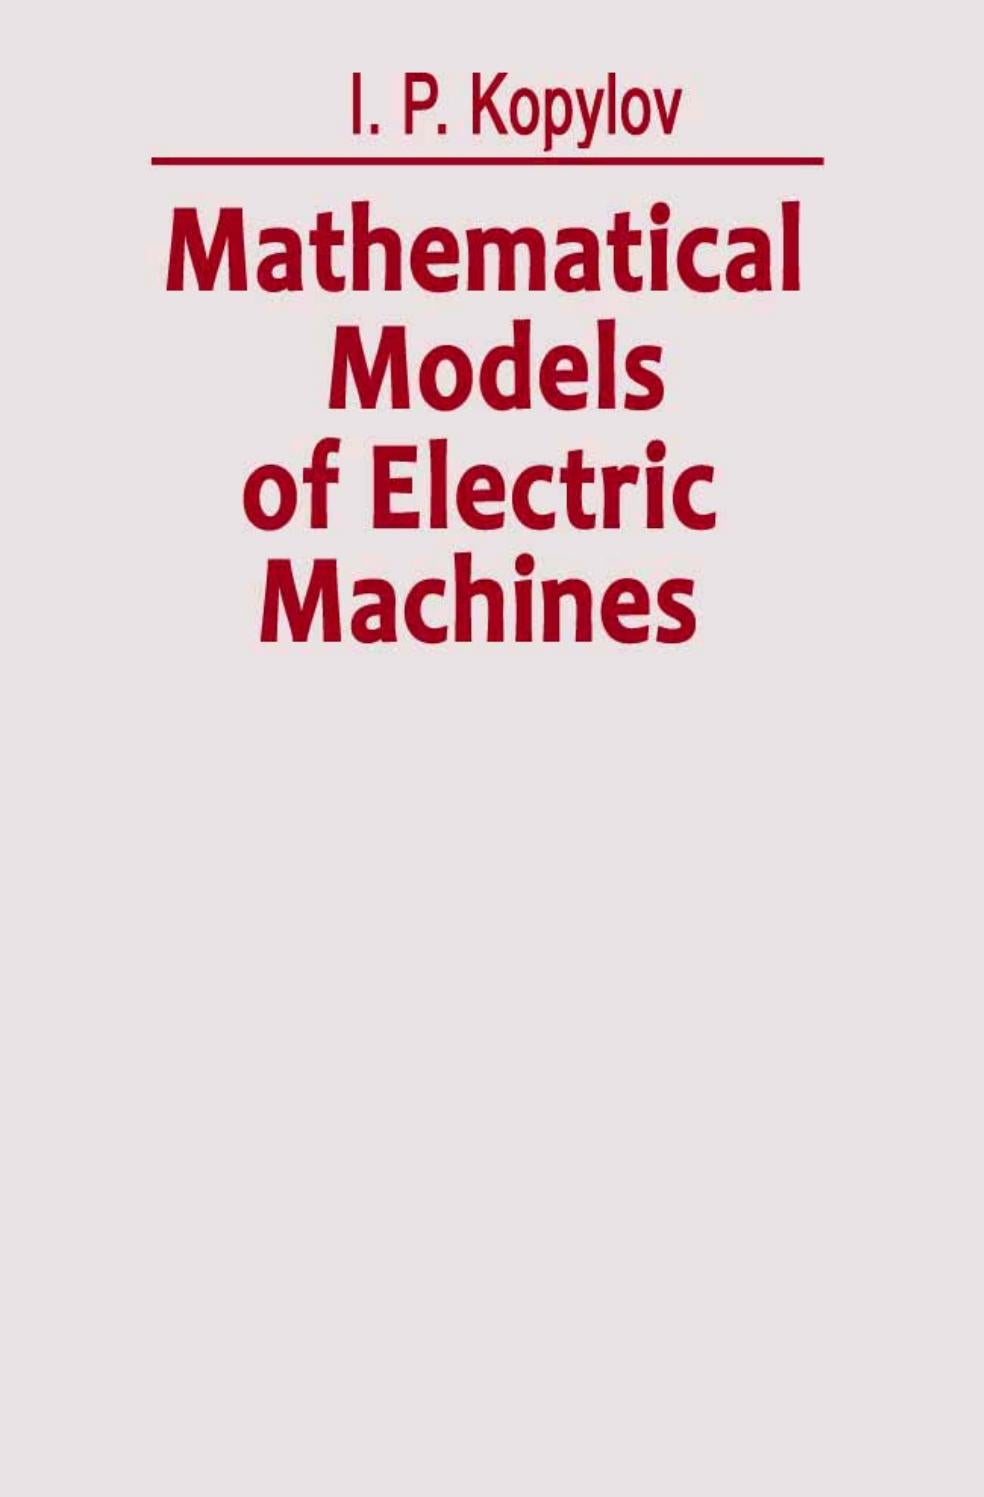 mathematical models of electric machines i p kopylov by blog da engenharia de produo issuu - Wie Man Ein Kingsizekopfteil Aus Einer Alten Tr Macht